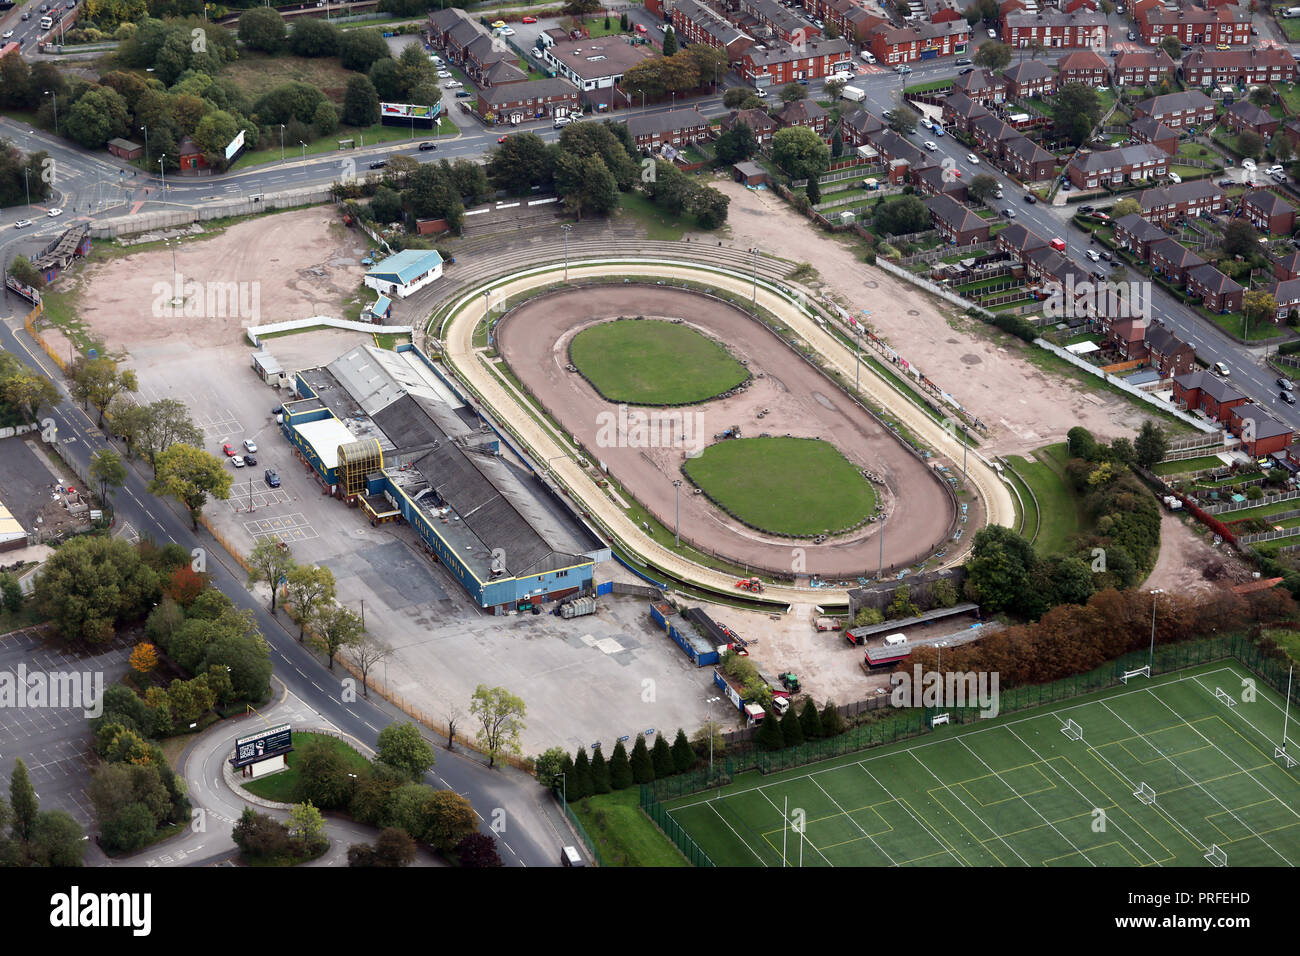 aerial view of Belle Vue Greyhound Stadium, Manchester - Stock Image